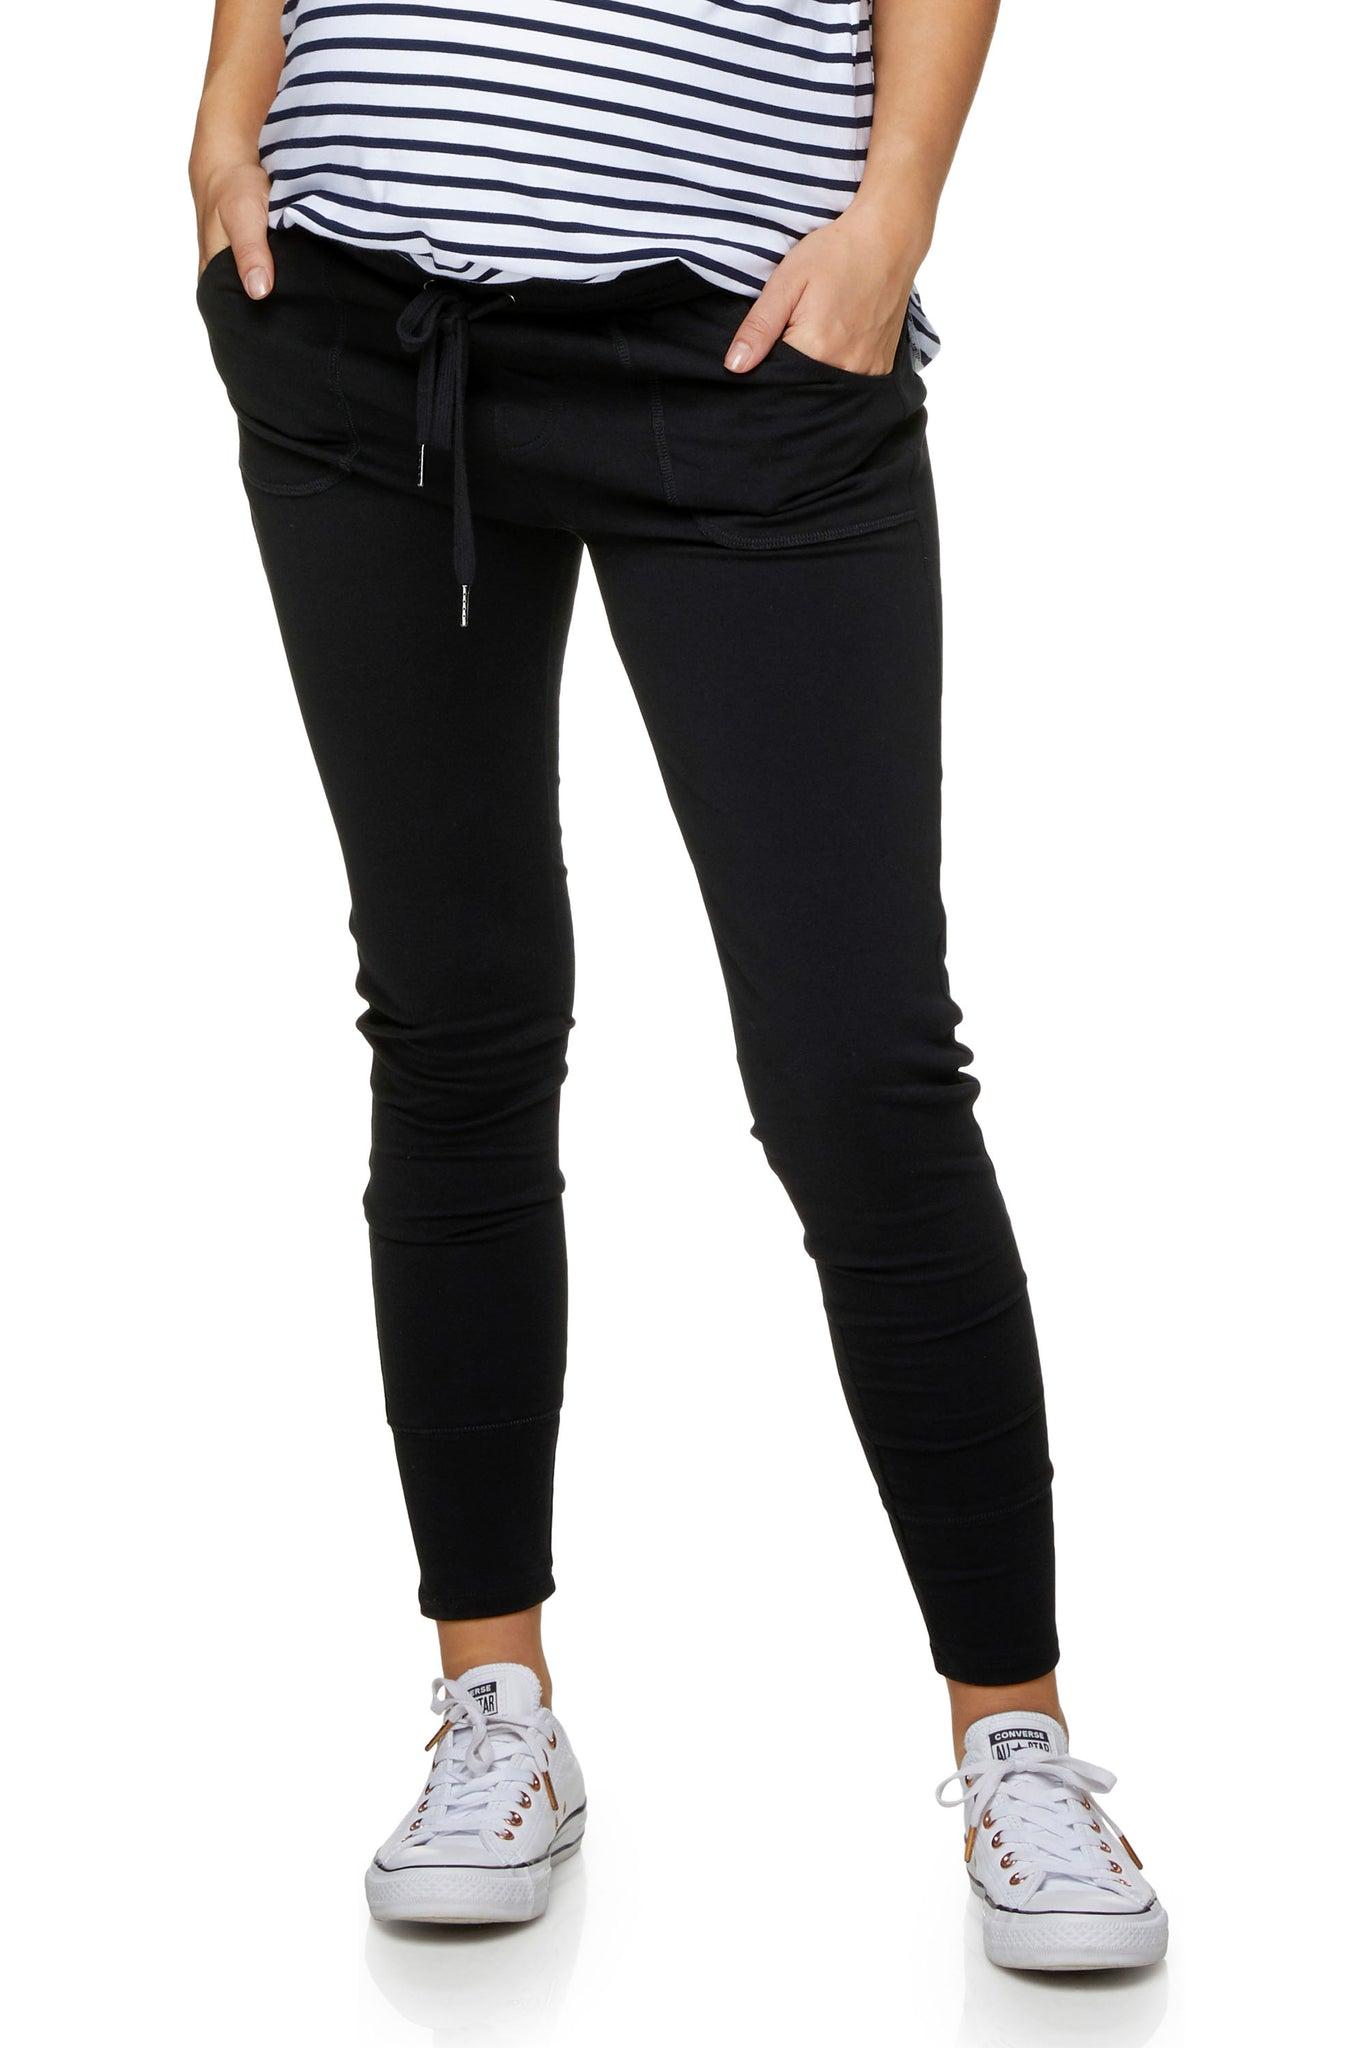 Black Maternity Pants / Jogger 1